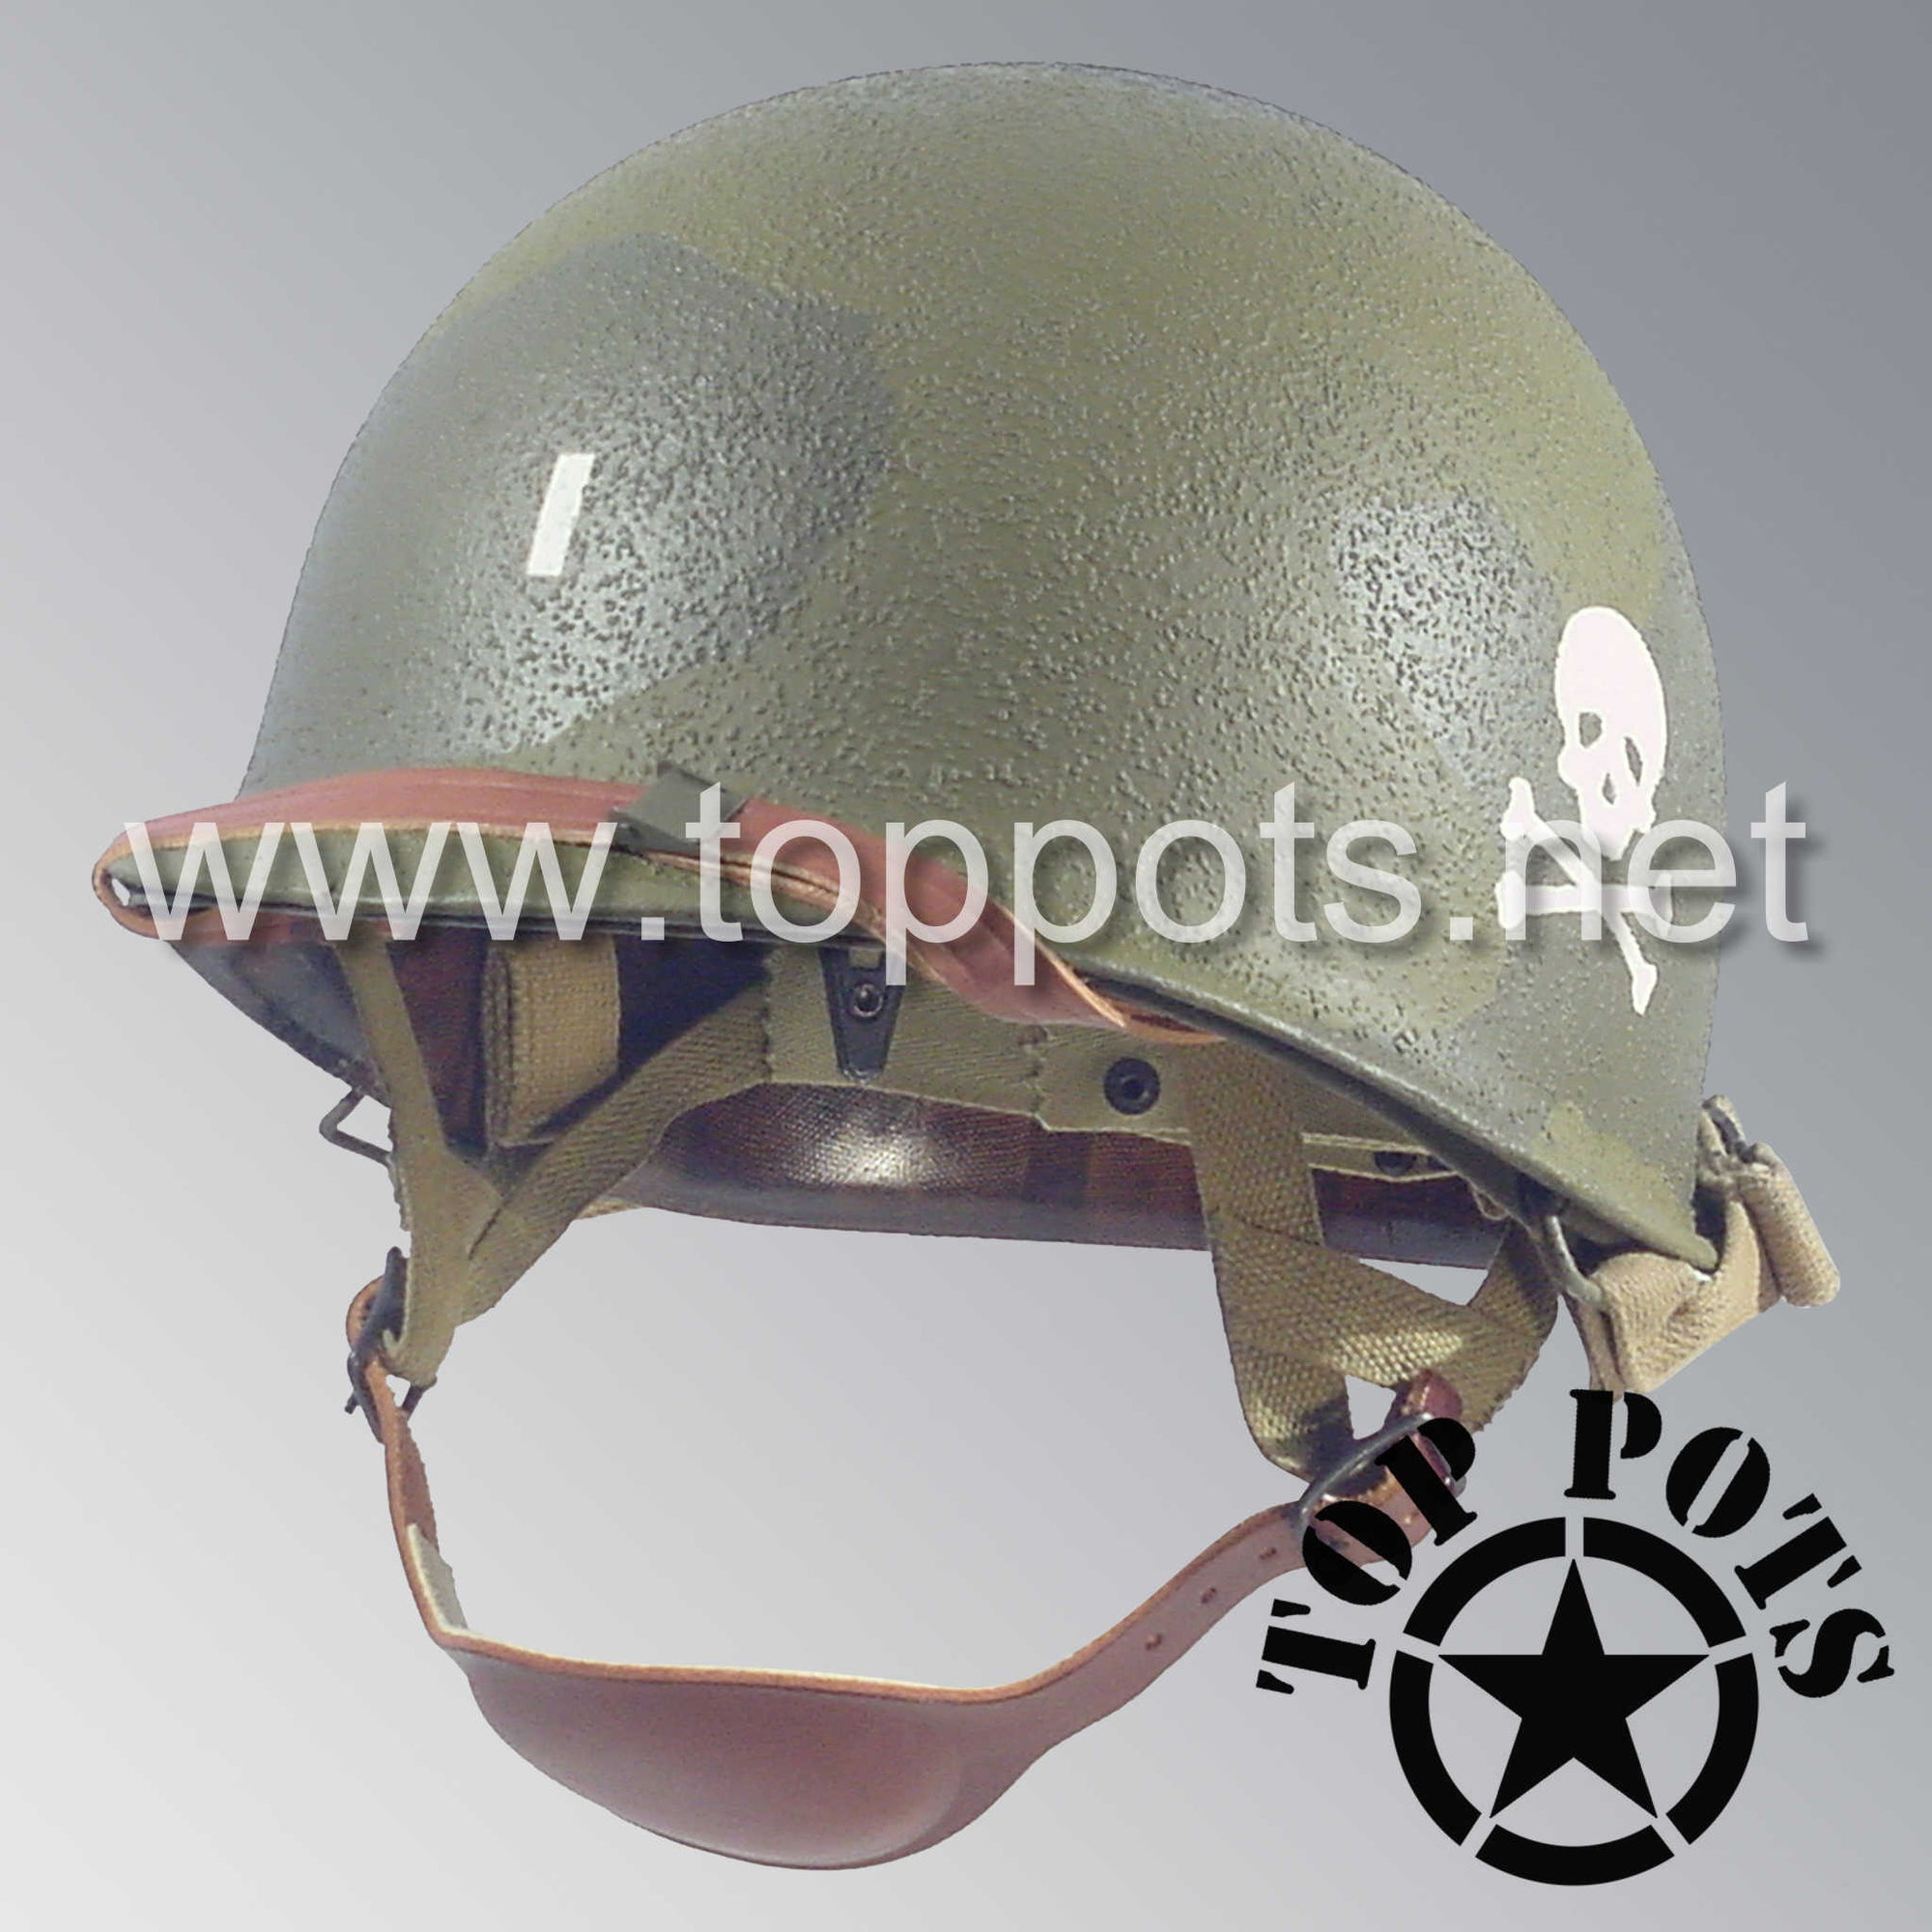 Image 1 of WWII US Army Restored Original M1C Paratrooper Airborne Helmet Swivel Bale Shell and Liner with 504th PIR Officer Pathfinder Camouflage Emblem